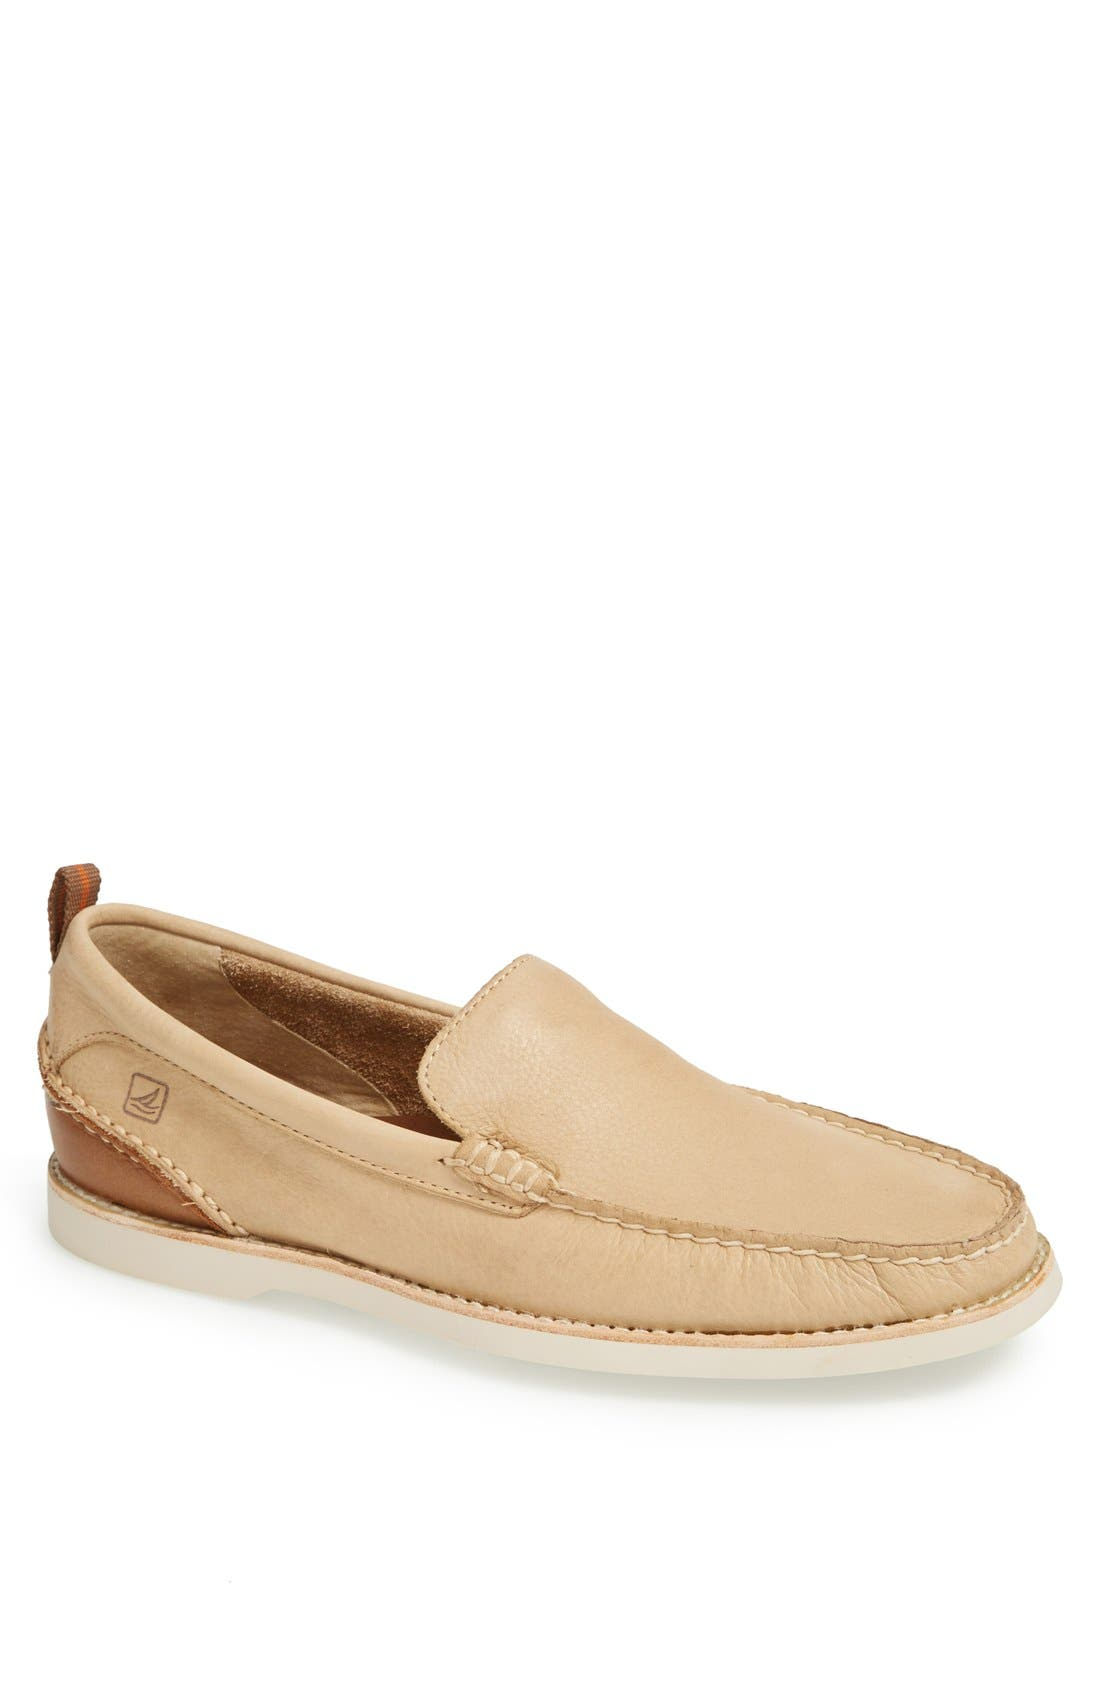 Alternate Image 1 Selected - Sperry Top-Sider® 'Seaside Venetian' Slip-On